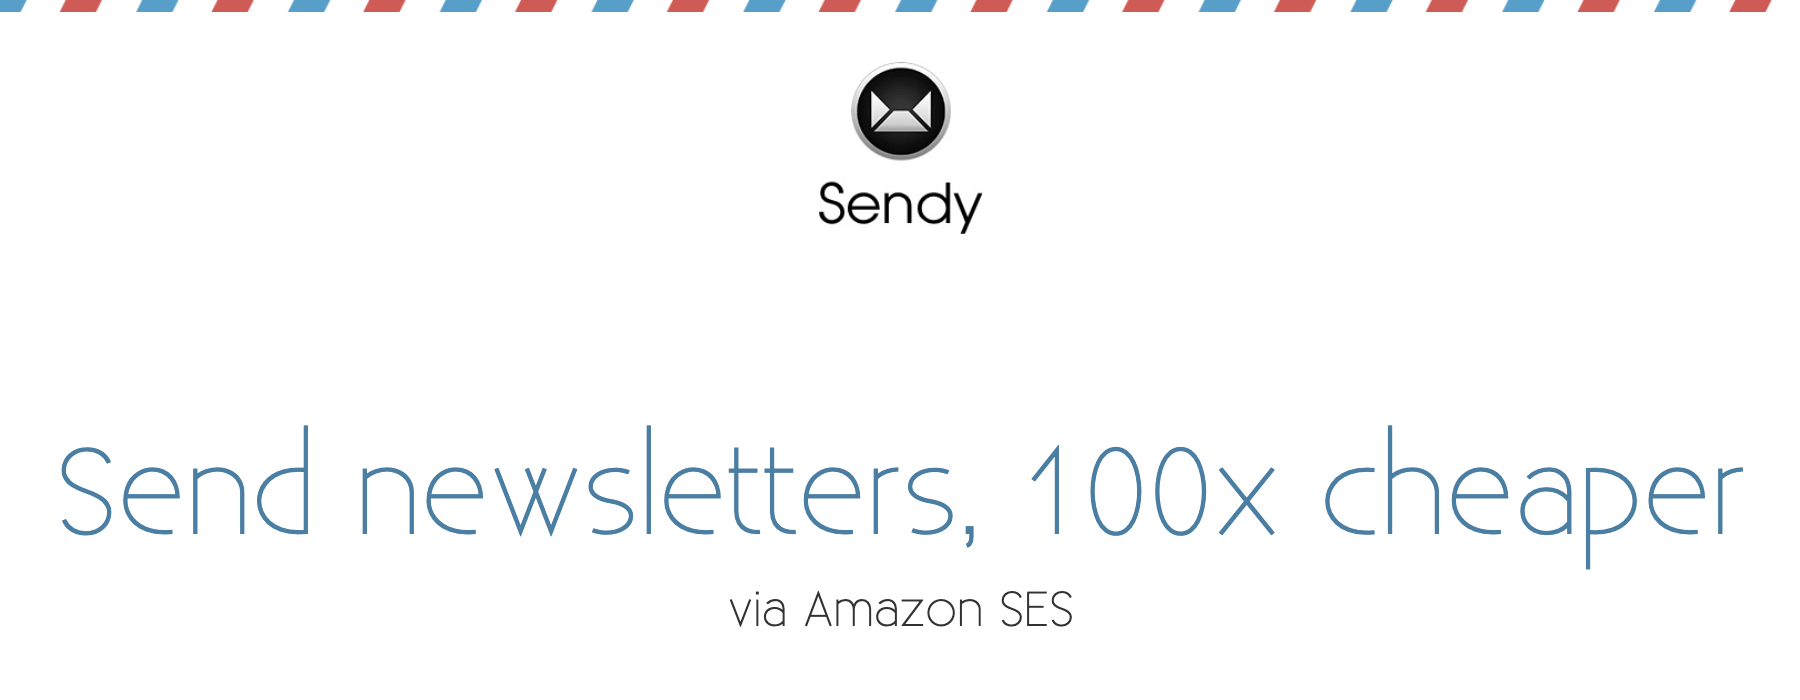 Mailchimp to Sendy: How I Cut Email Costs by 100x